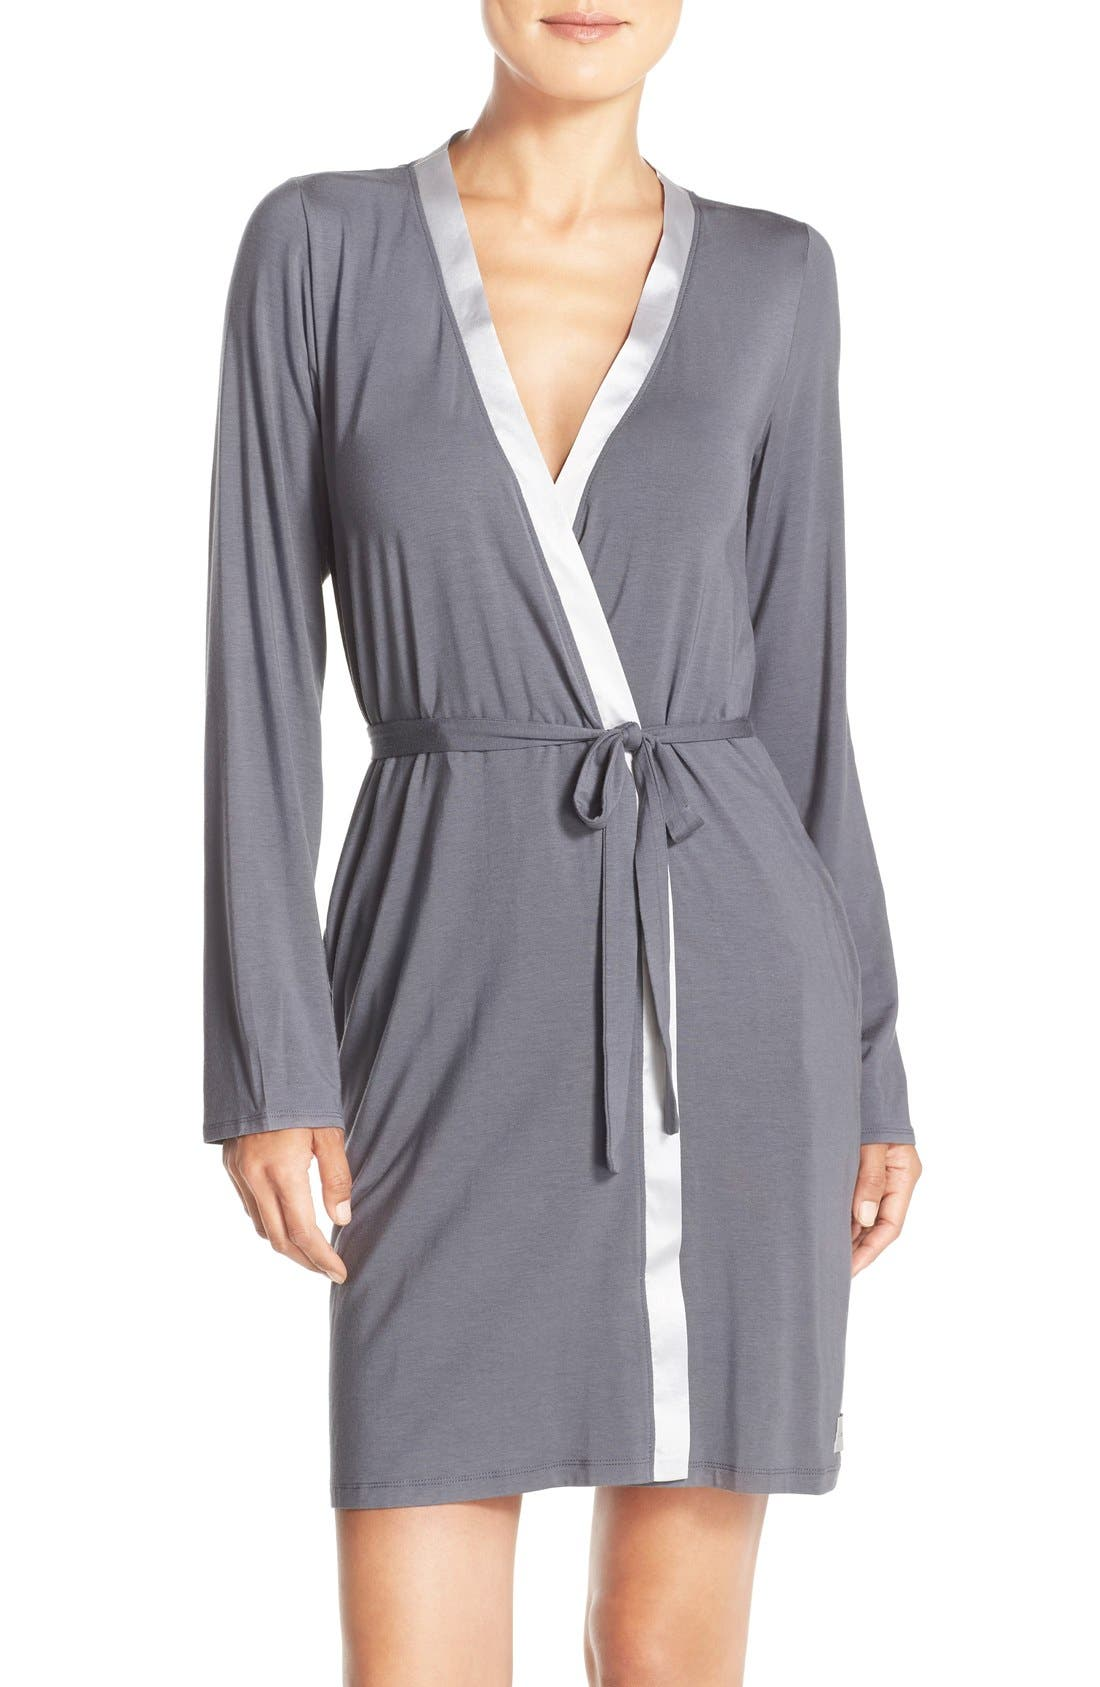 Alternate Image 1 Selected - Calvin Klein 'Essentials' Short Robe